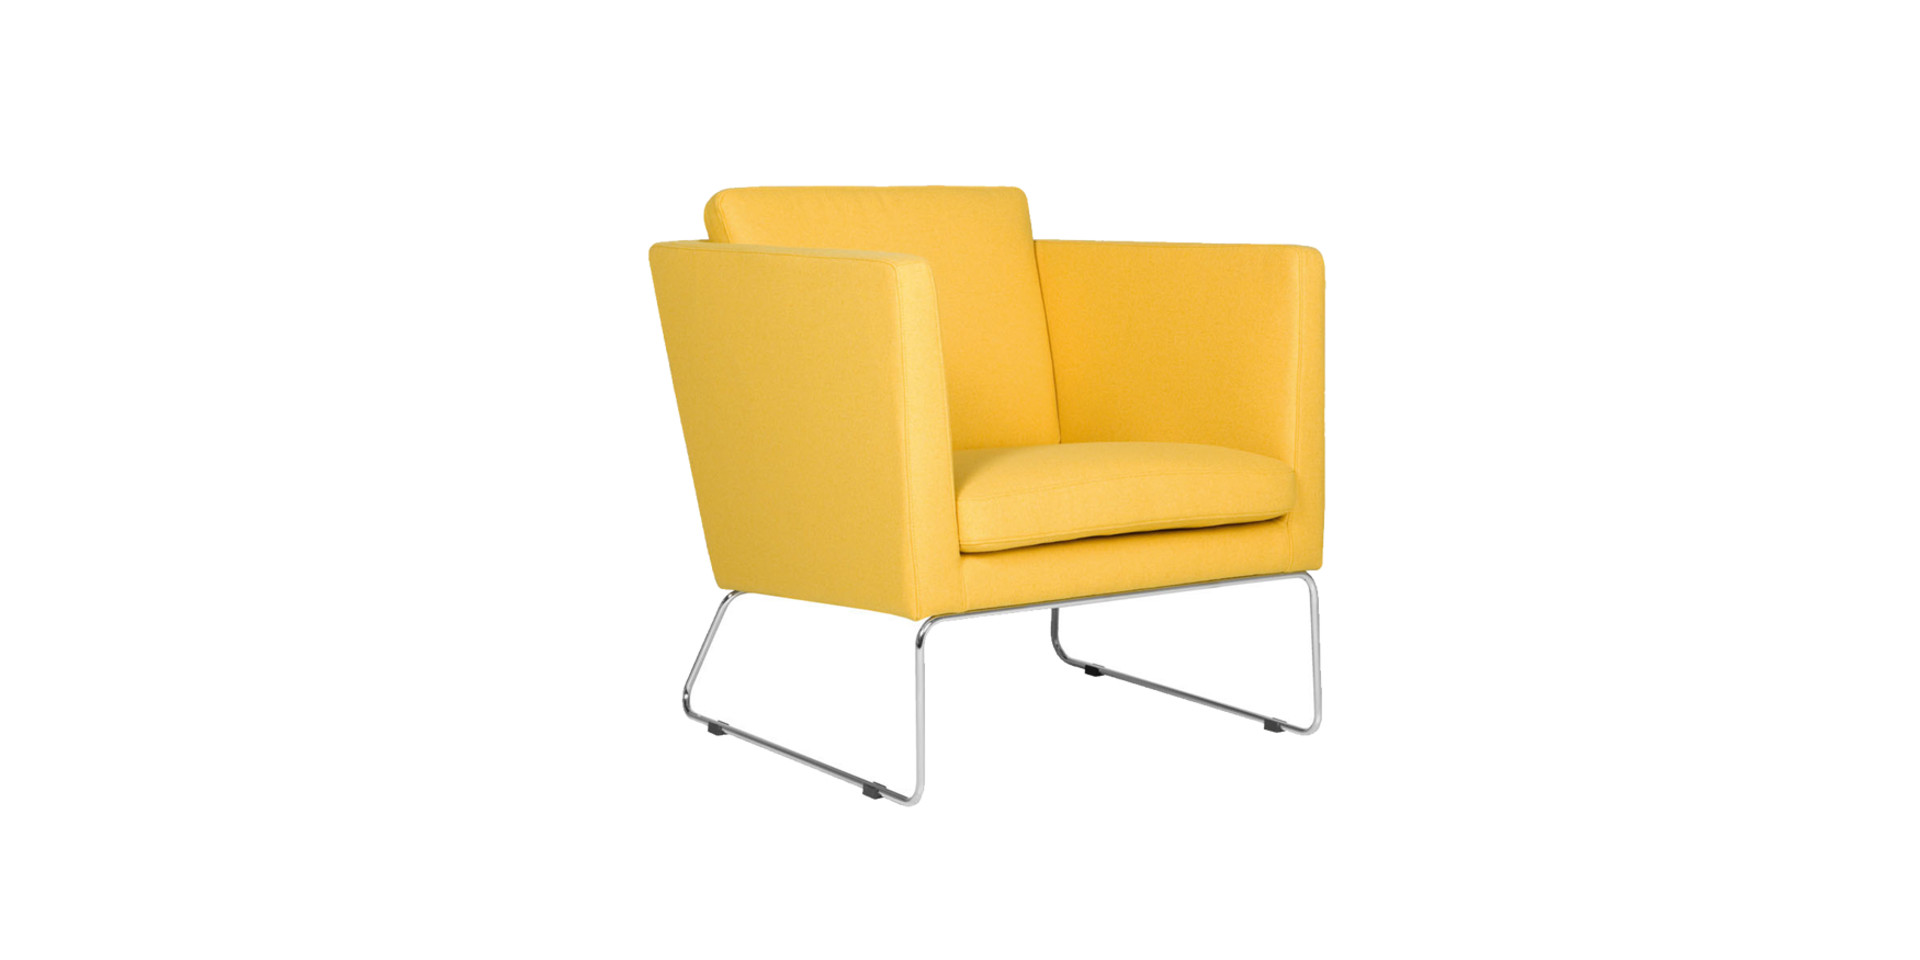 sits-clark-fauteuil-armchair_panno2272_yellow_2